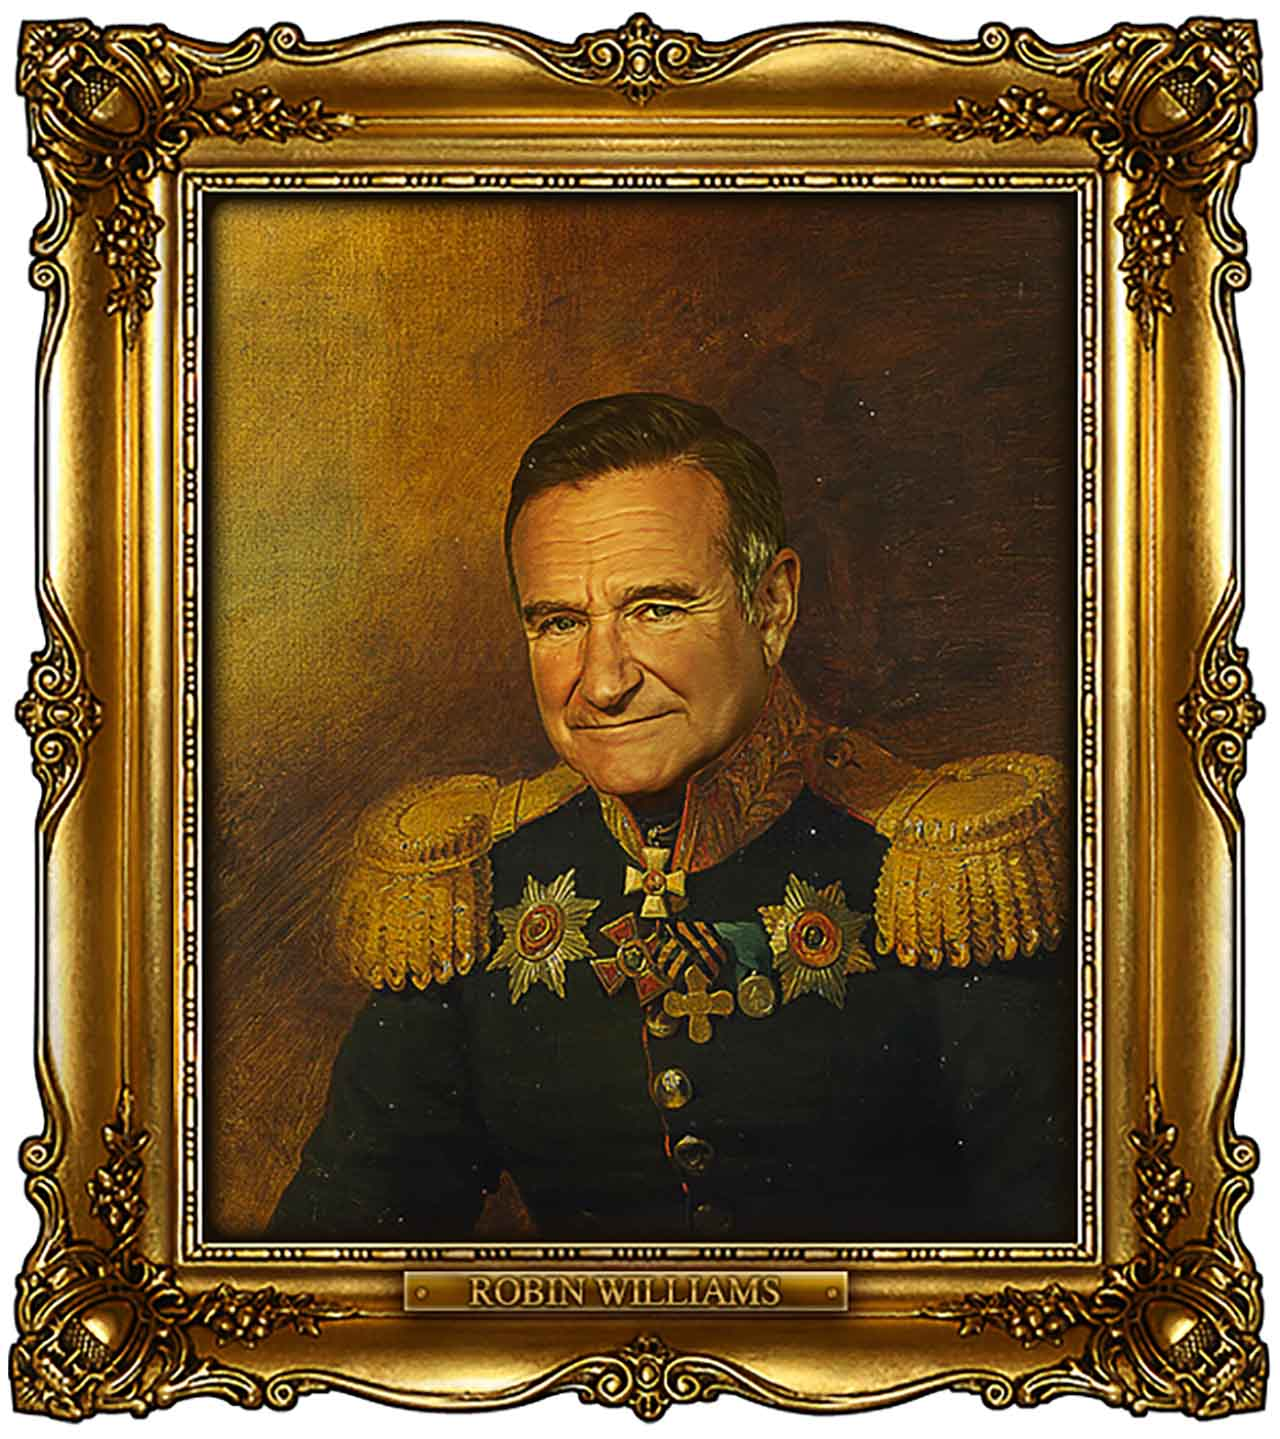 Artist Turns Famous Actors Into Russian Generals - Robin Williams